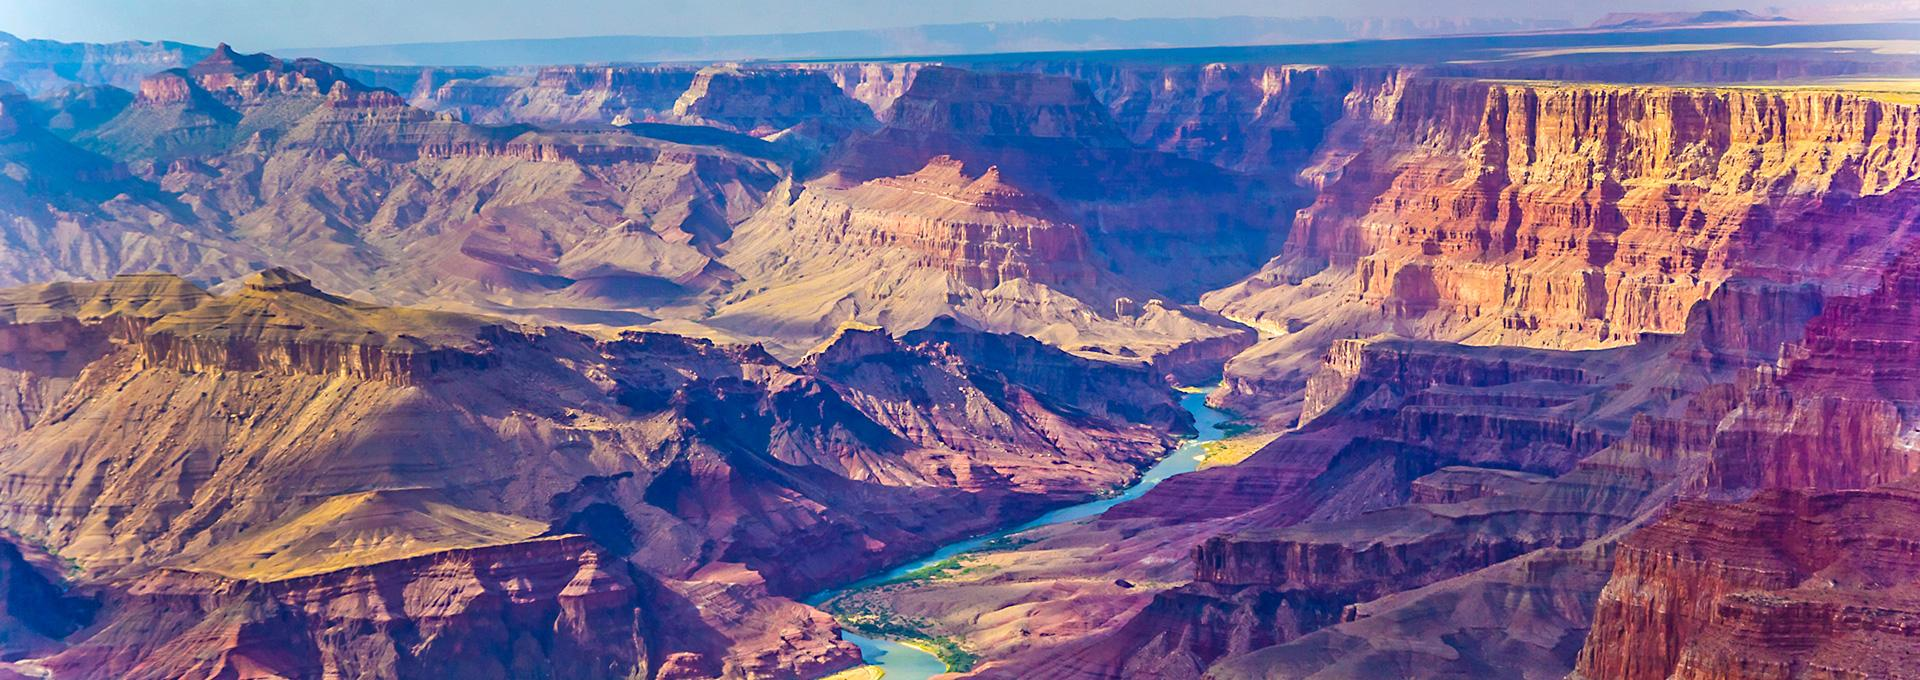 majestic view of the Grand Canyon National Park